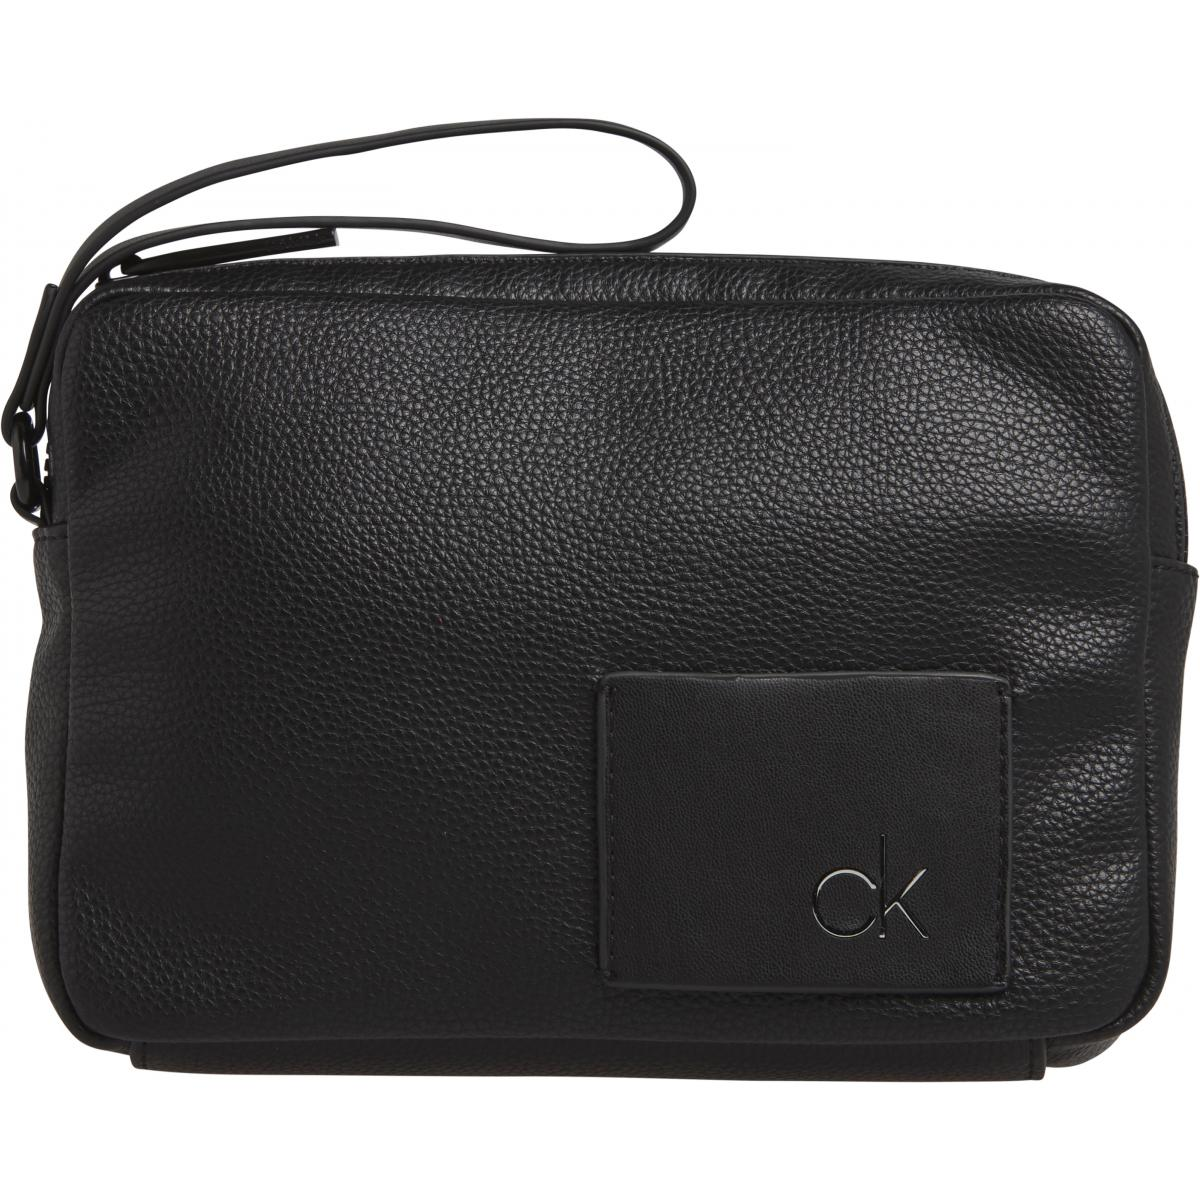 CK DIRECT COMPACT CASE Calvin Klein Maroquinerie